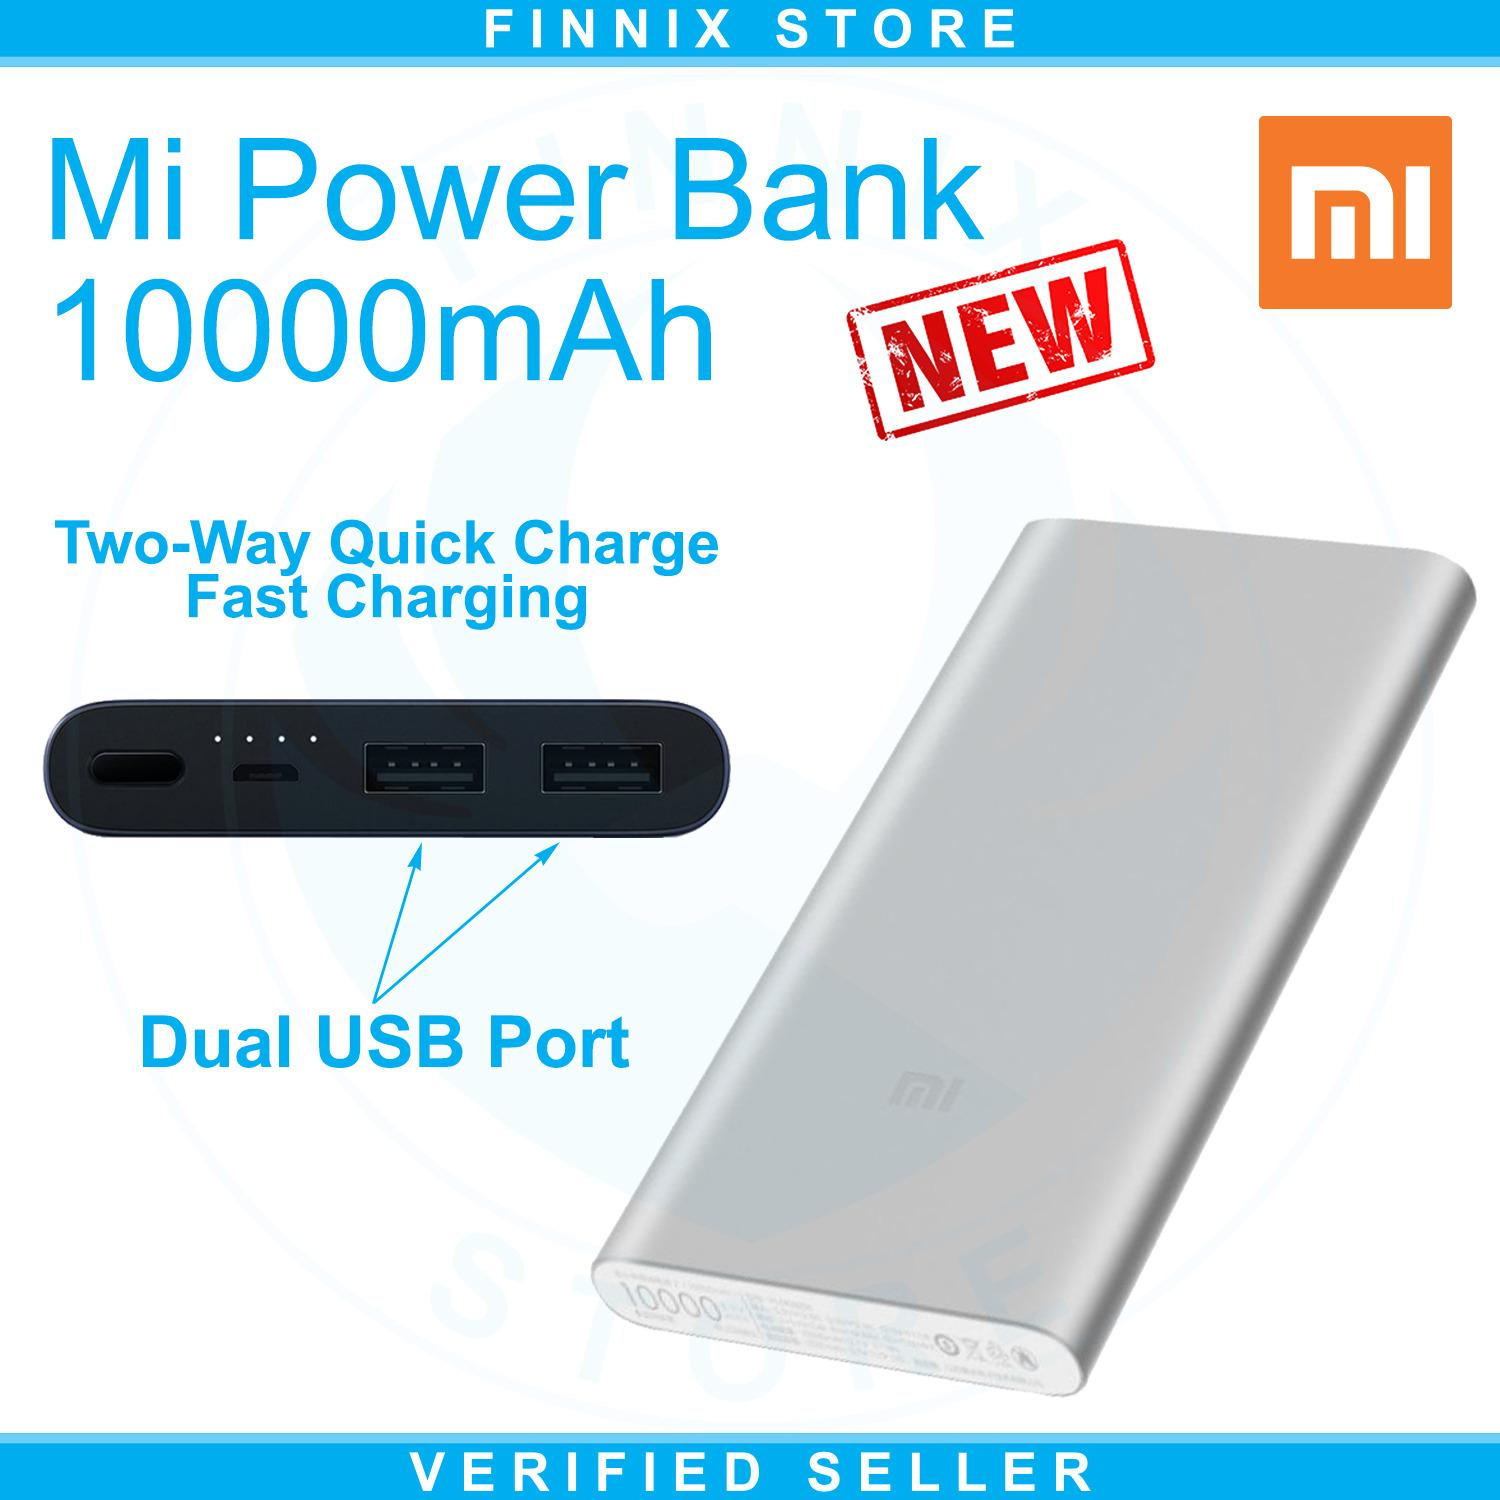 Xiaomi Mi Power Bank 10000mAh Dual USB Port Fast Charging (Powerbank 10000mAh Terbaru Xiaomi Dengan